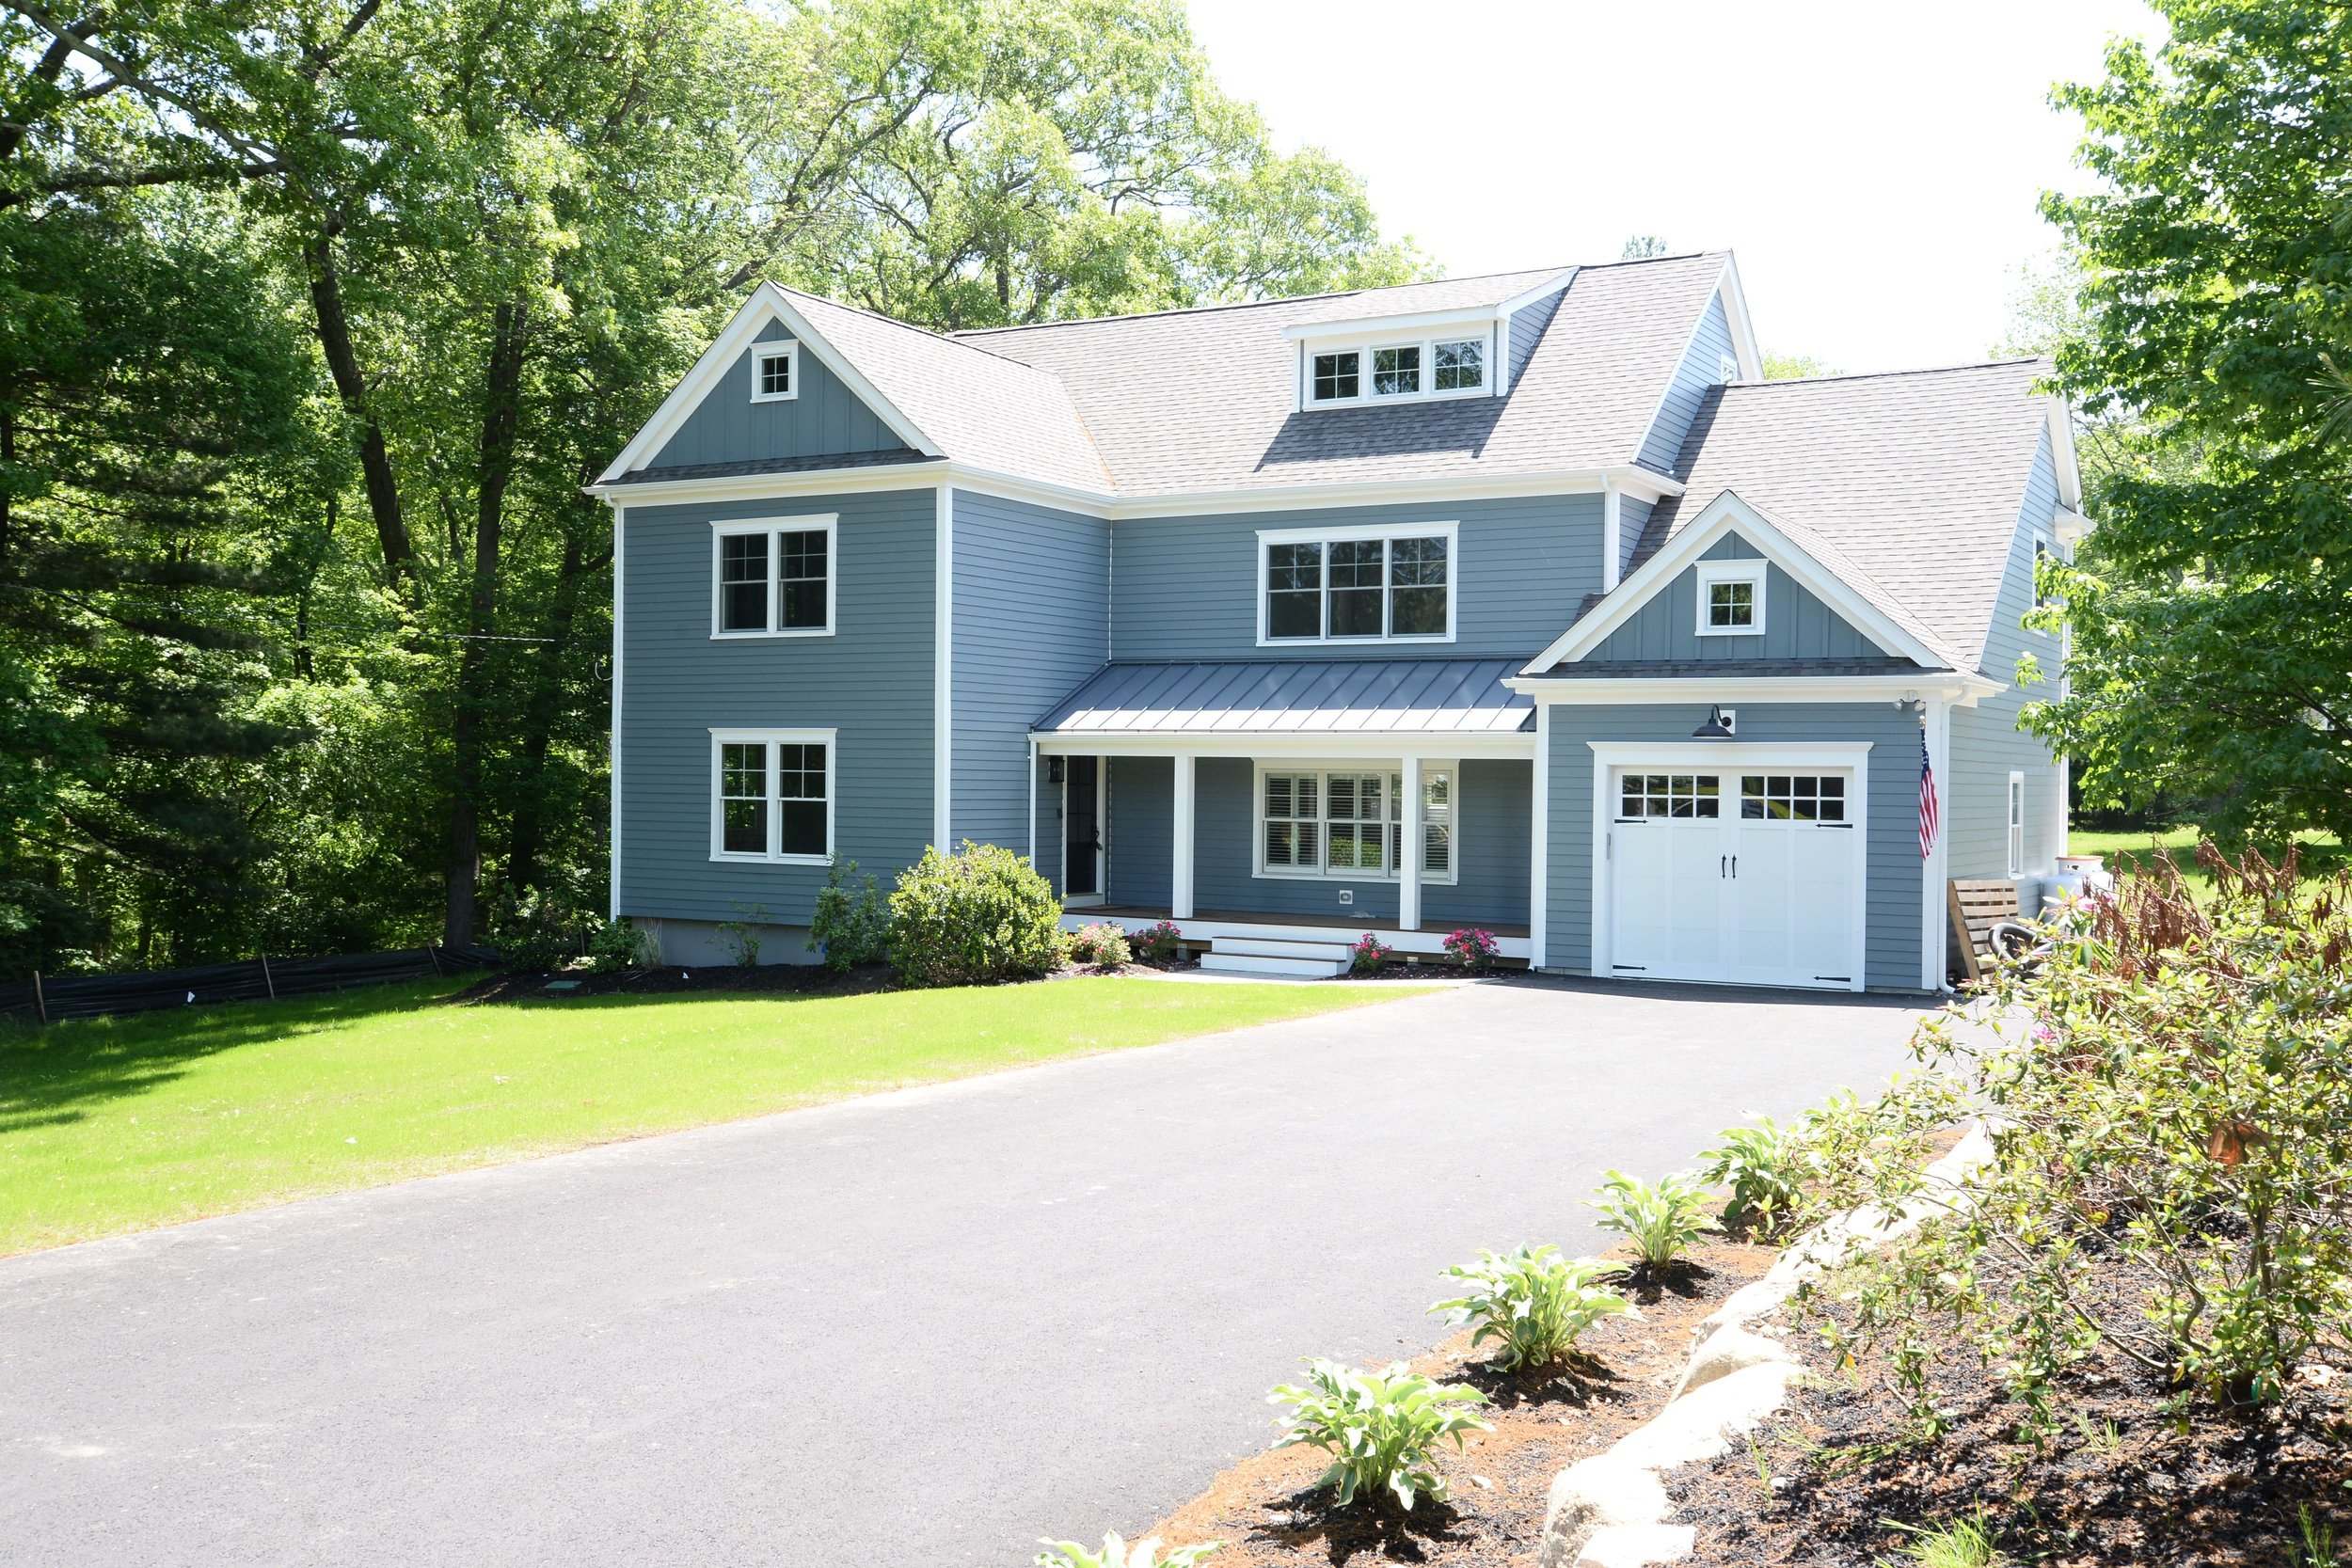 A standing metal roof, farmers porch, and custom garage door will detail the curb appeal of this offering.